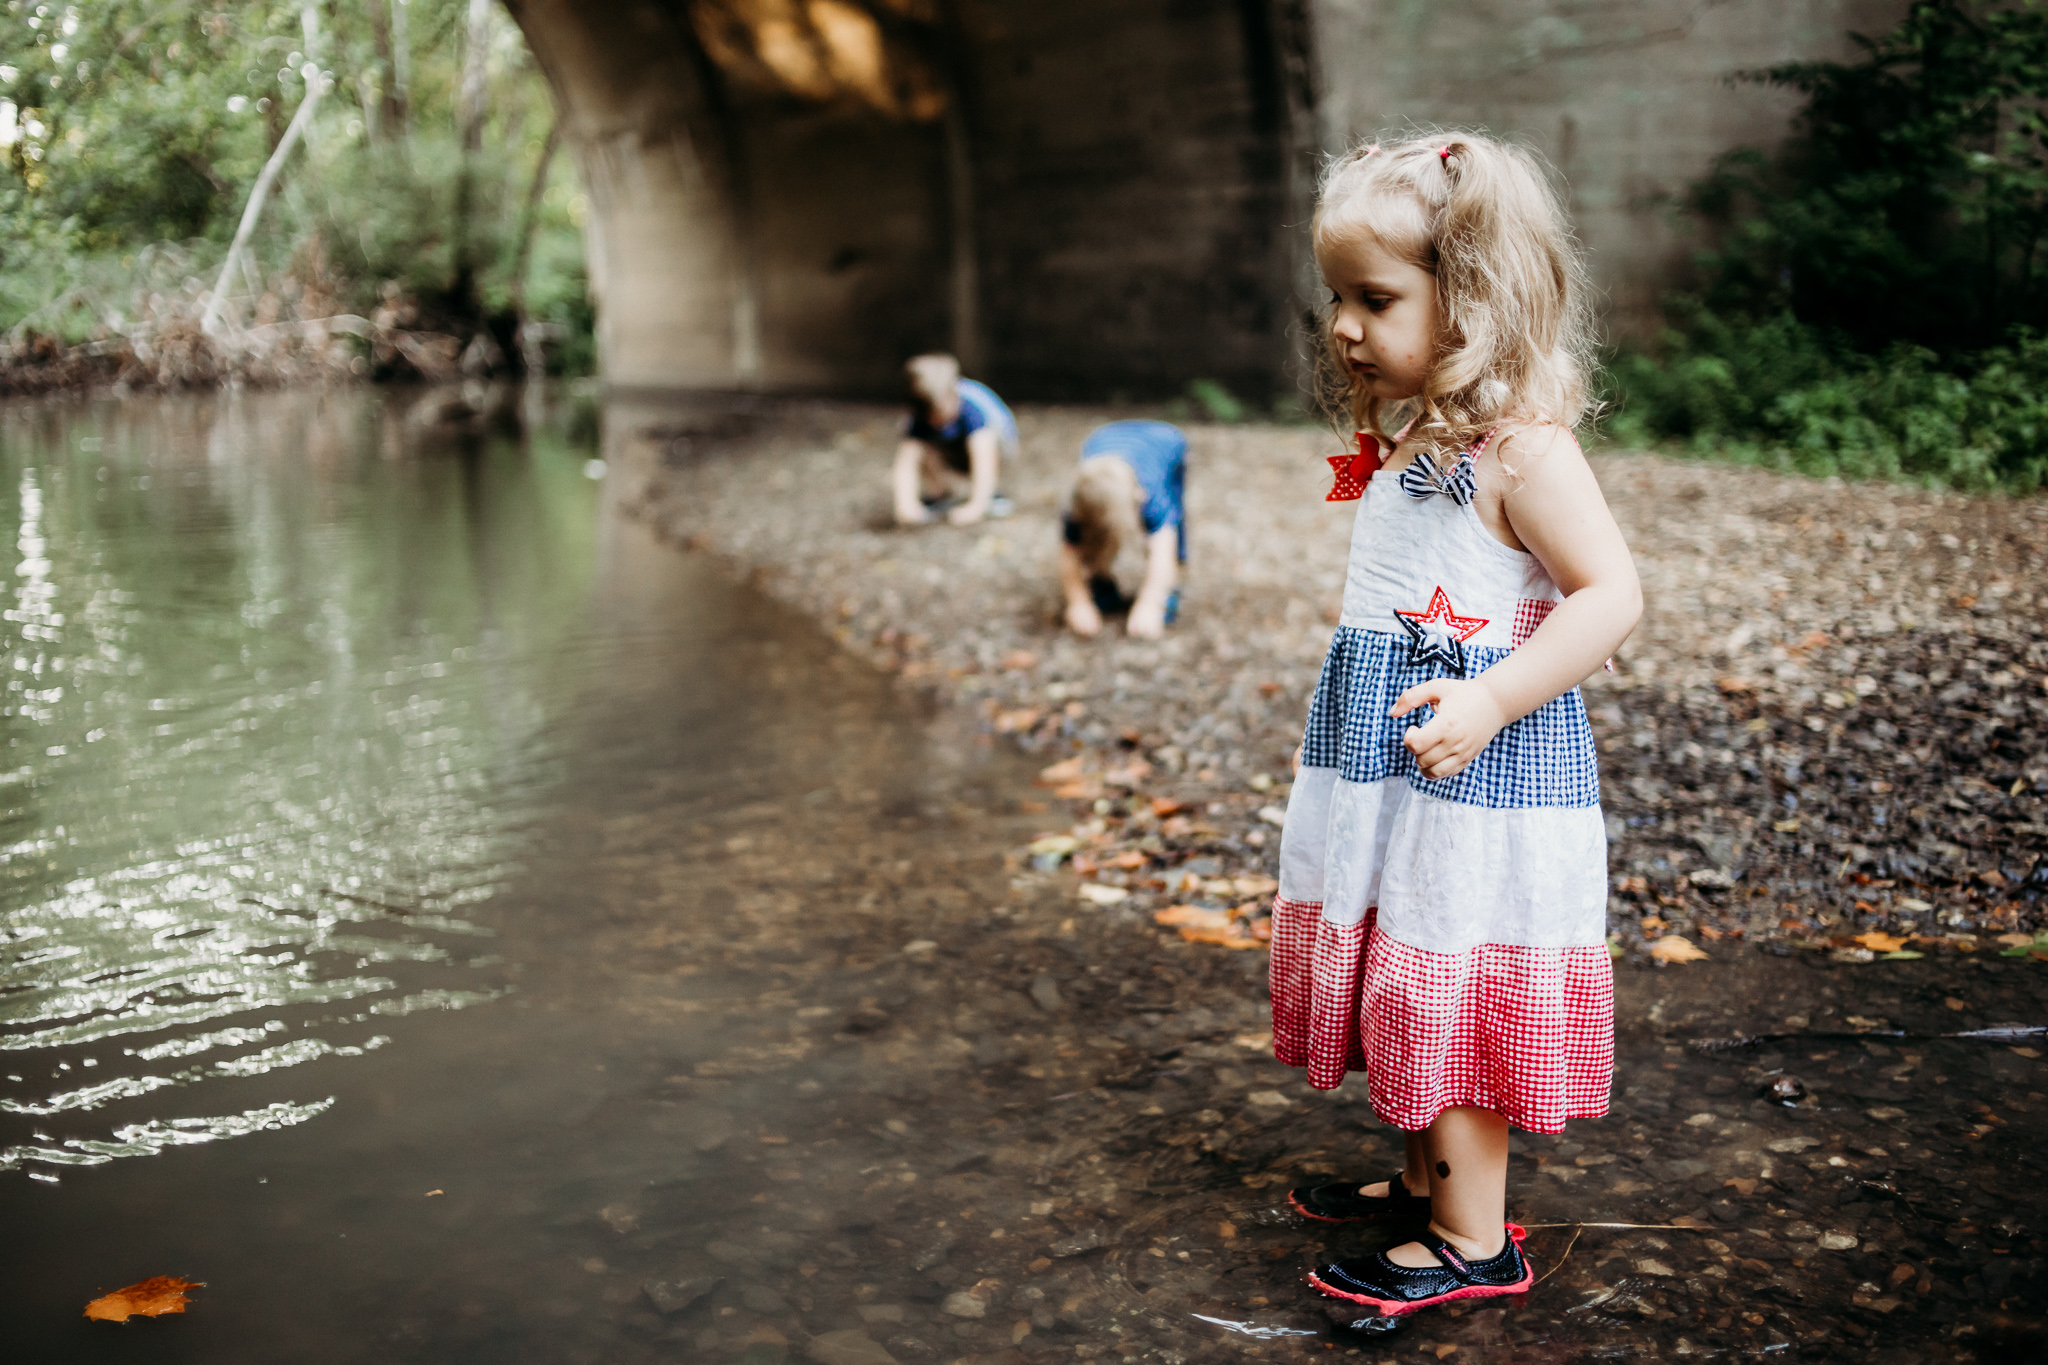 kansas-city-family-photography-at-rush-creek-by-merry-ohler.jpg